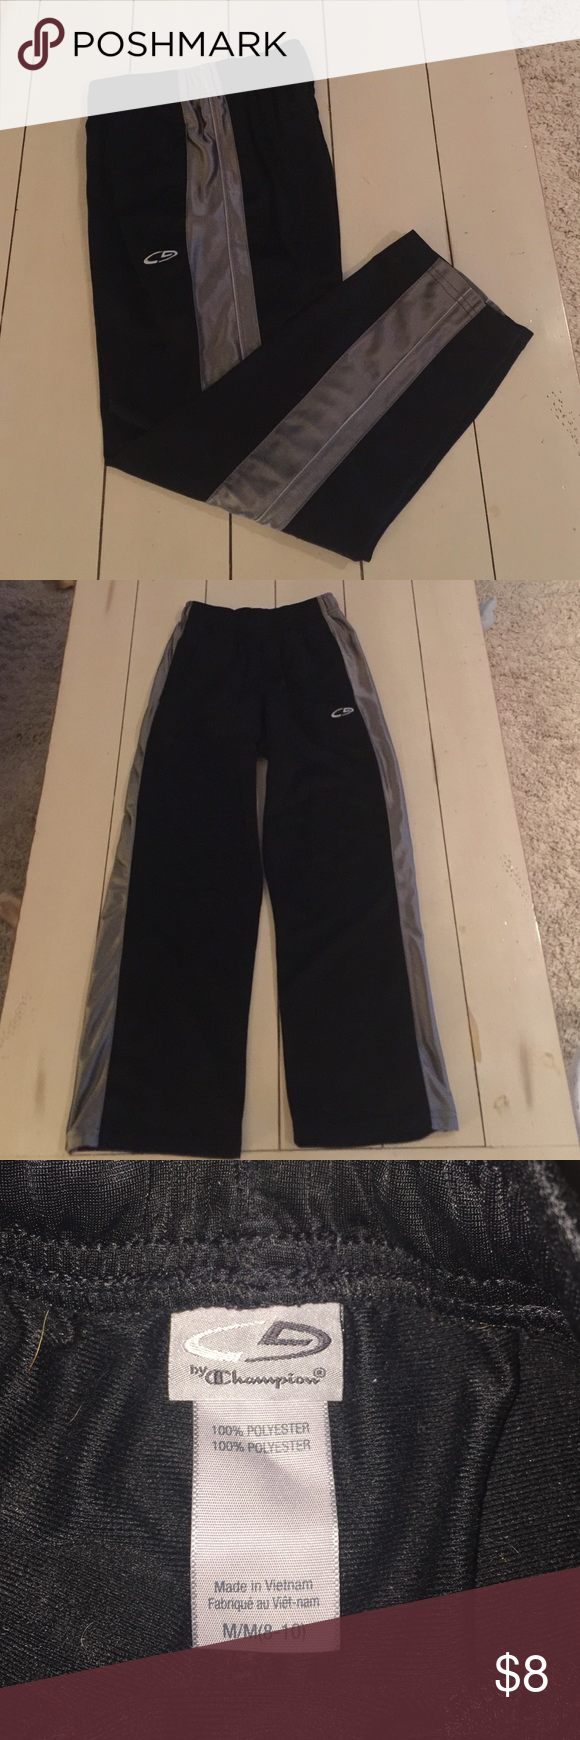 Youth Champion Sweatpants Excellent condition.  Shiny smooth outer, brushed warm inner.  Side pockets.  100% Polyester. Champion Bottoms Sweatpants & Joggers